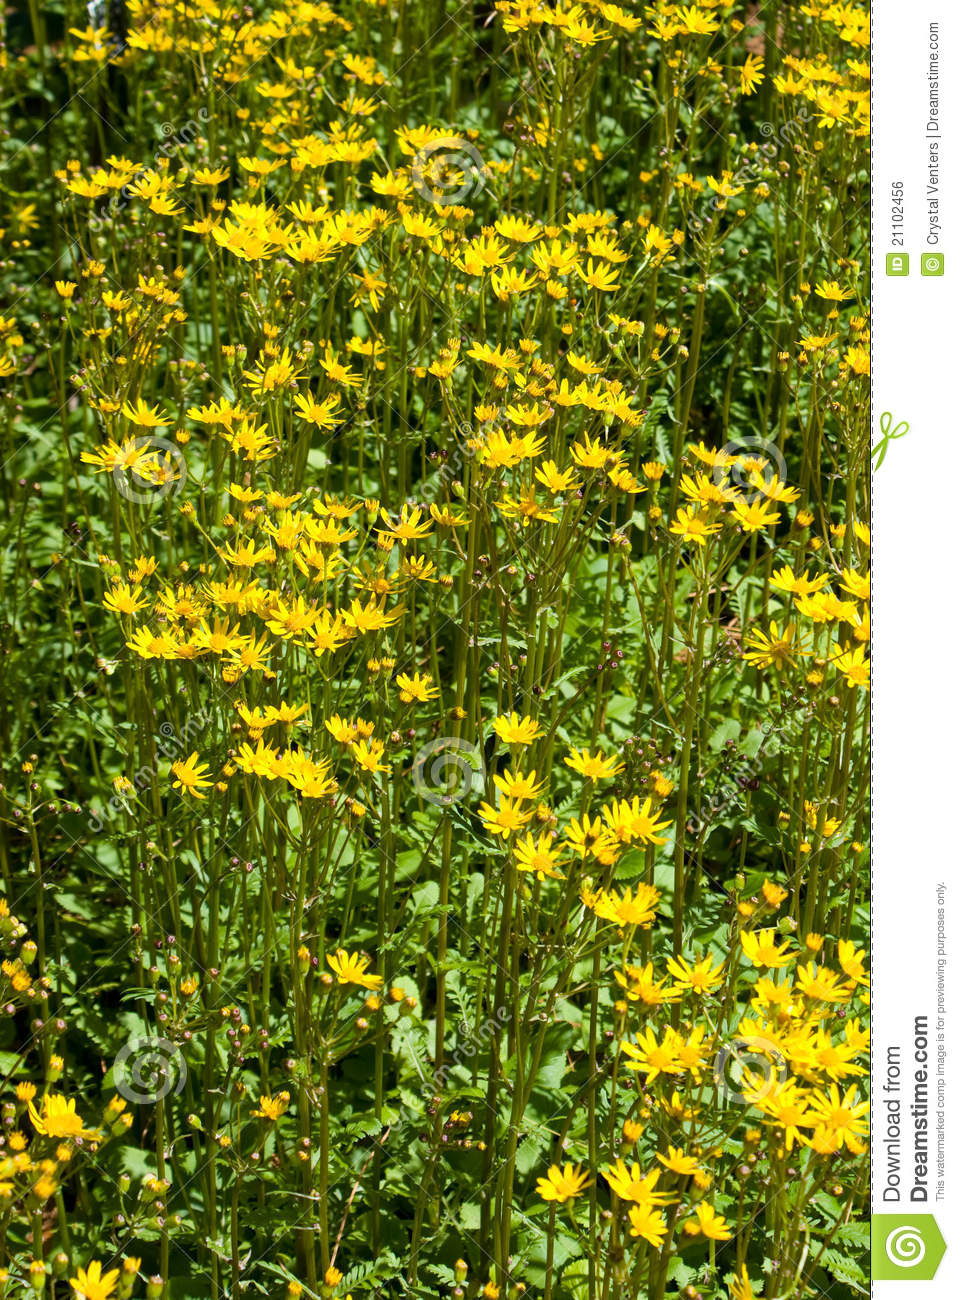 Yellow flowering tansy ragwort in the early summer season ...